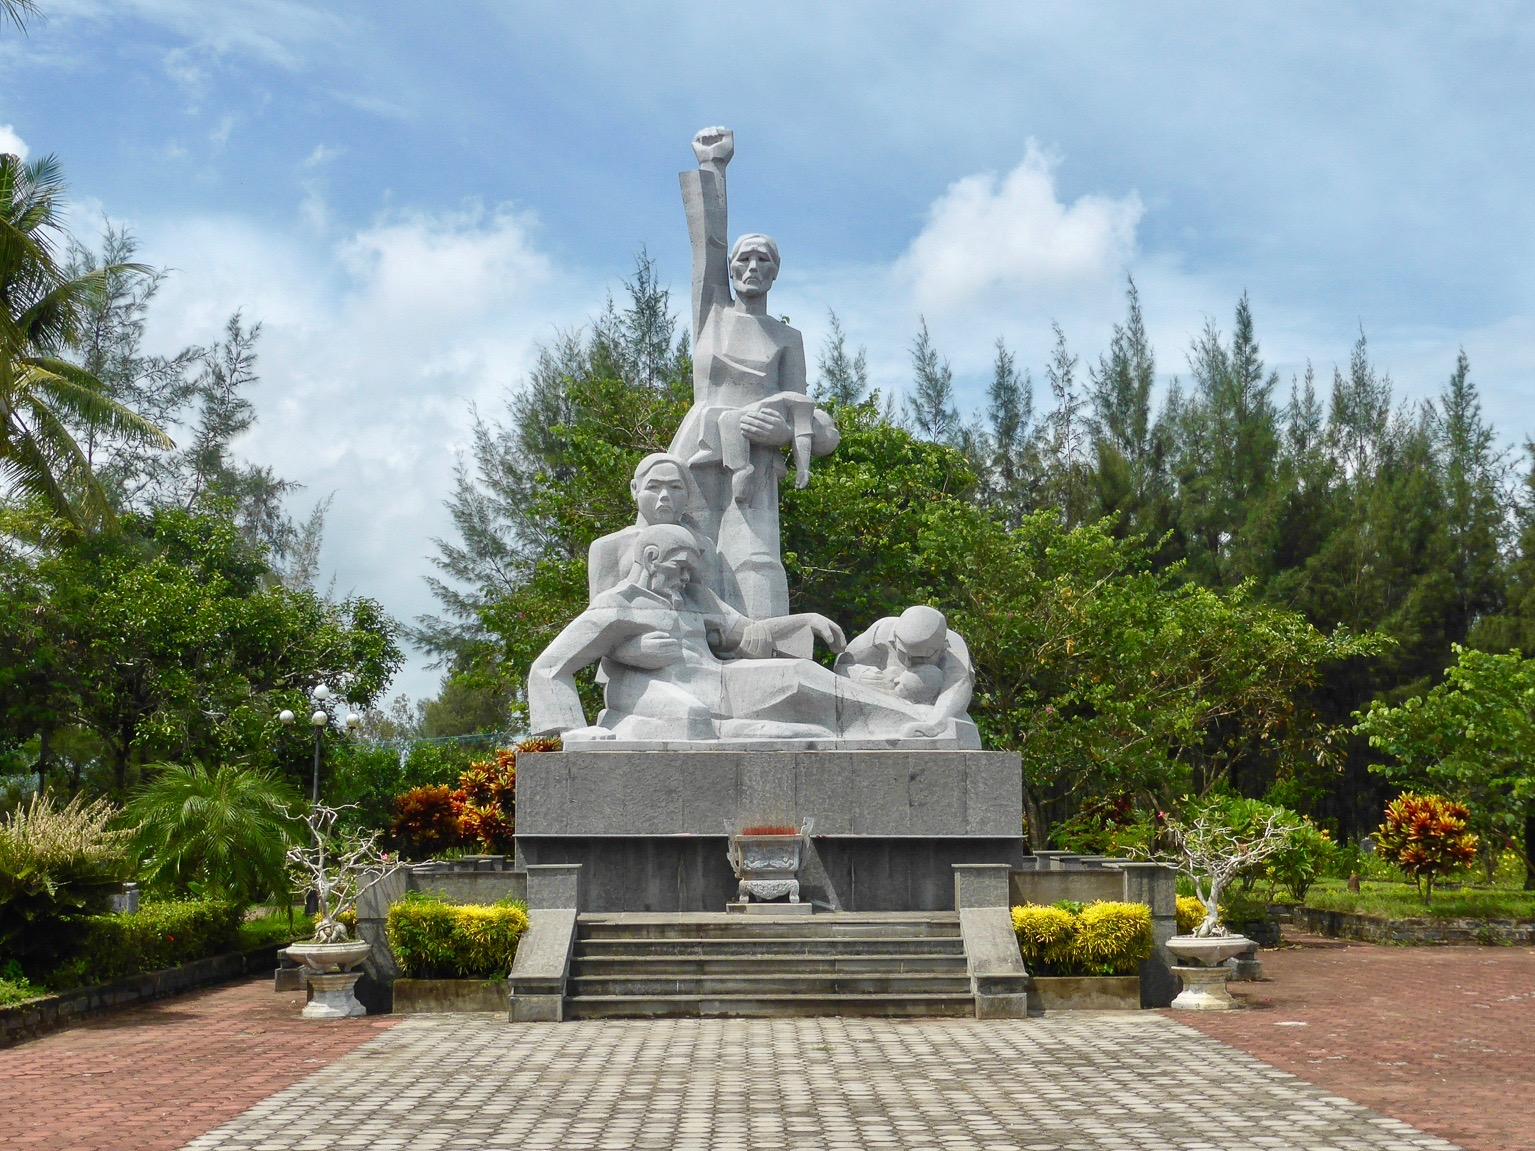 Doug George-Kanentiio: Let us remember the victims of the My Lai massacre